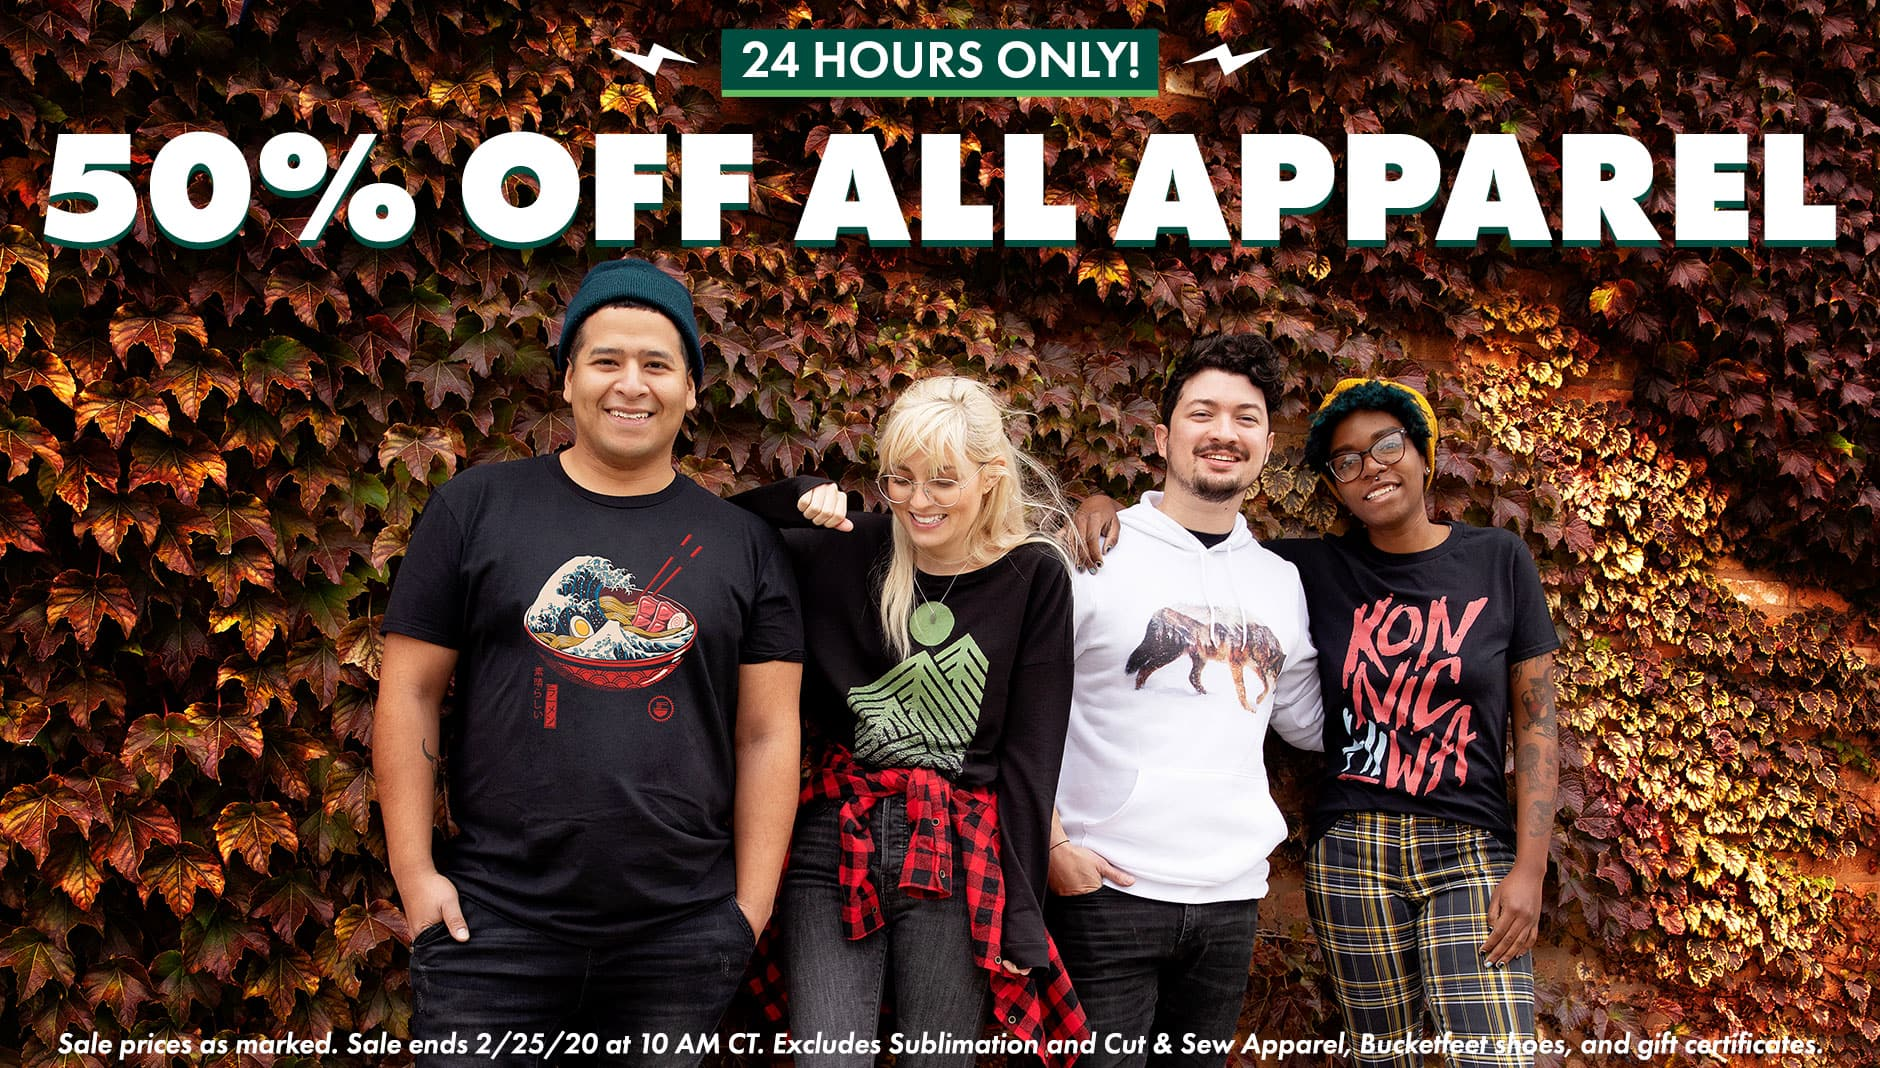 50% off ALL Apparel